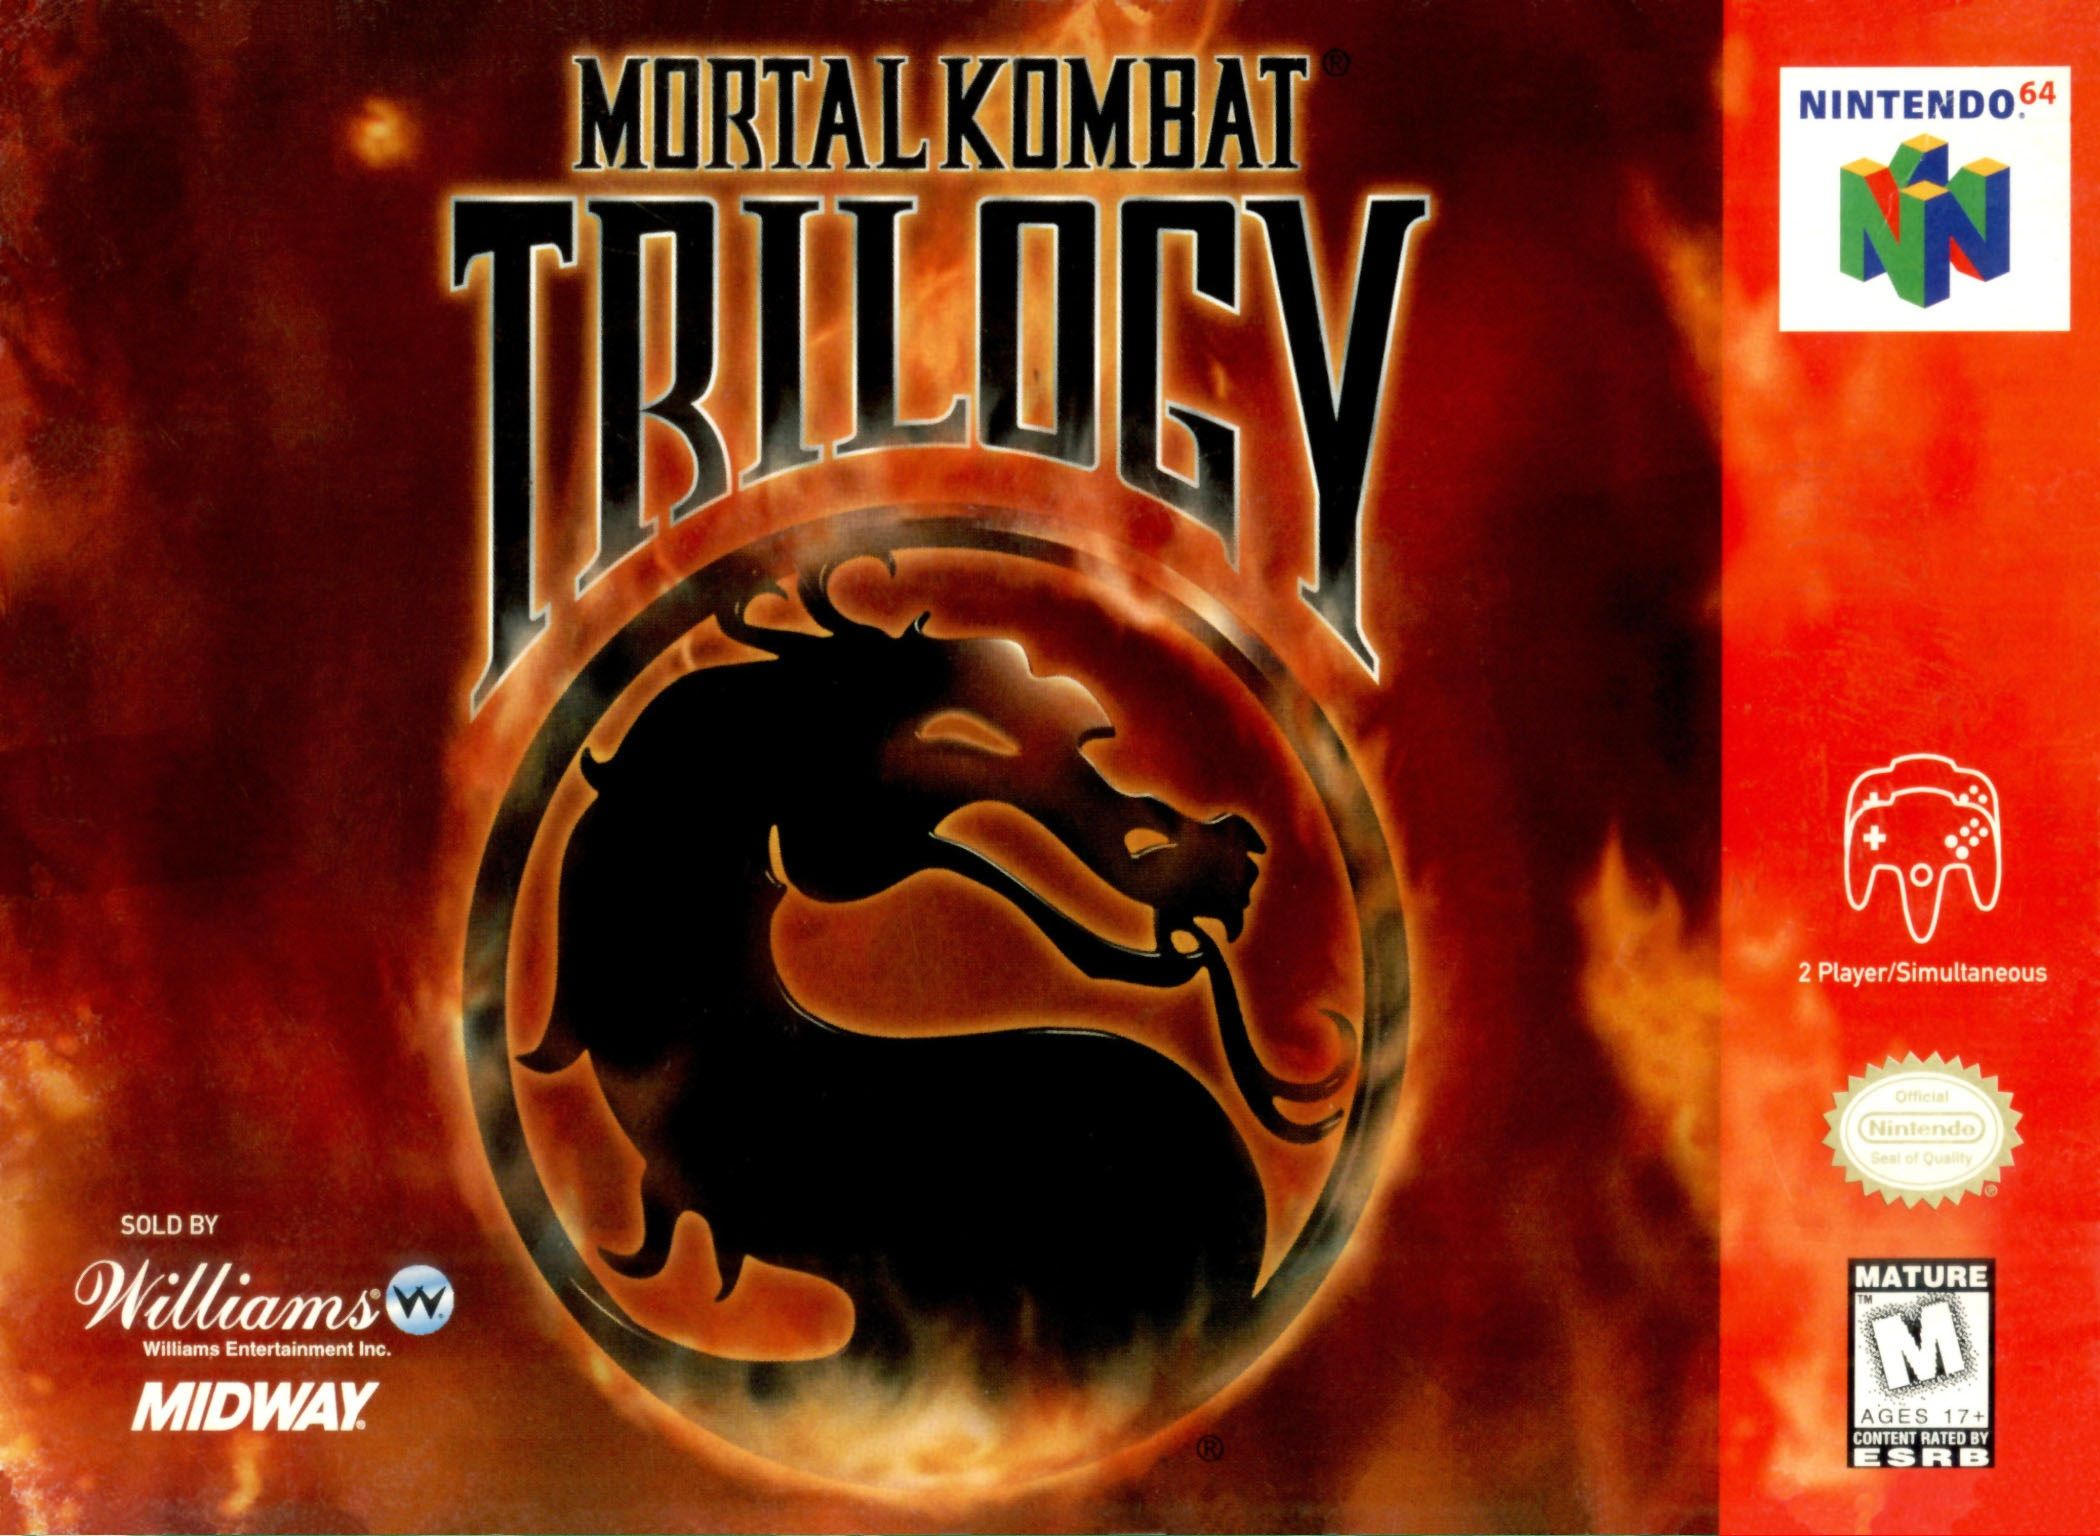 Mortal Kombat Trilogy Nintendo 64 Game Mortal kombat